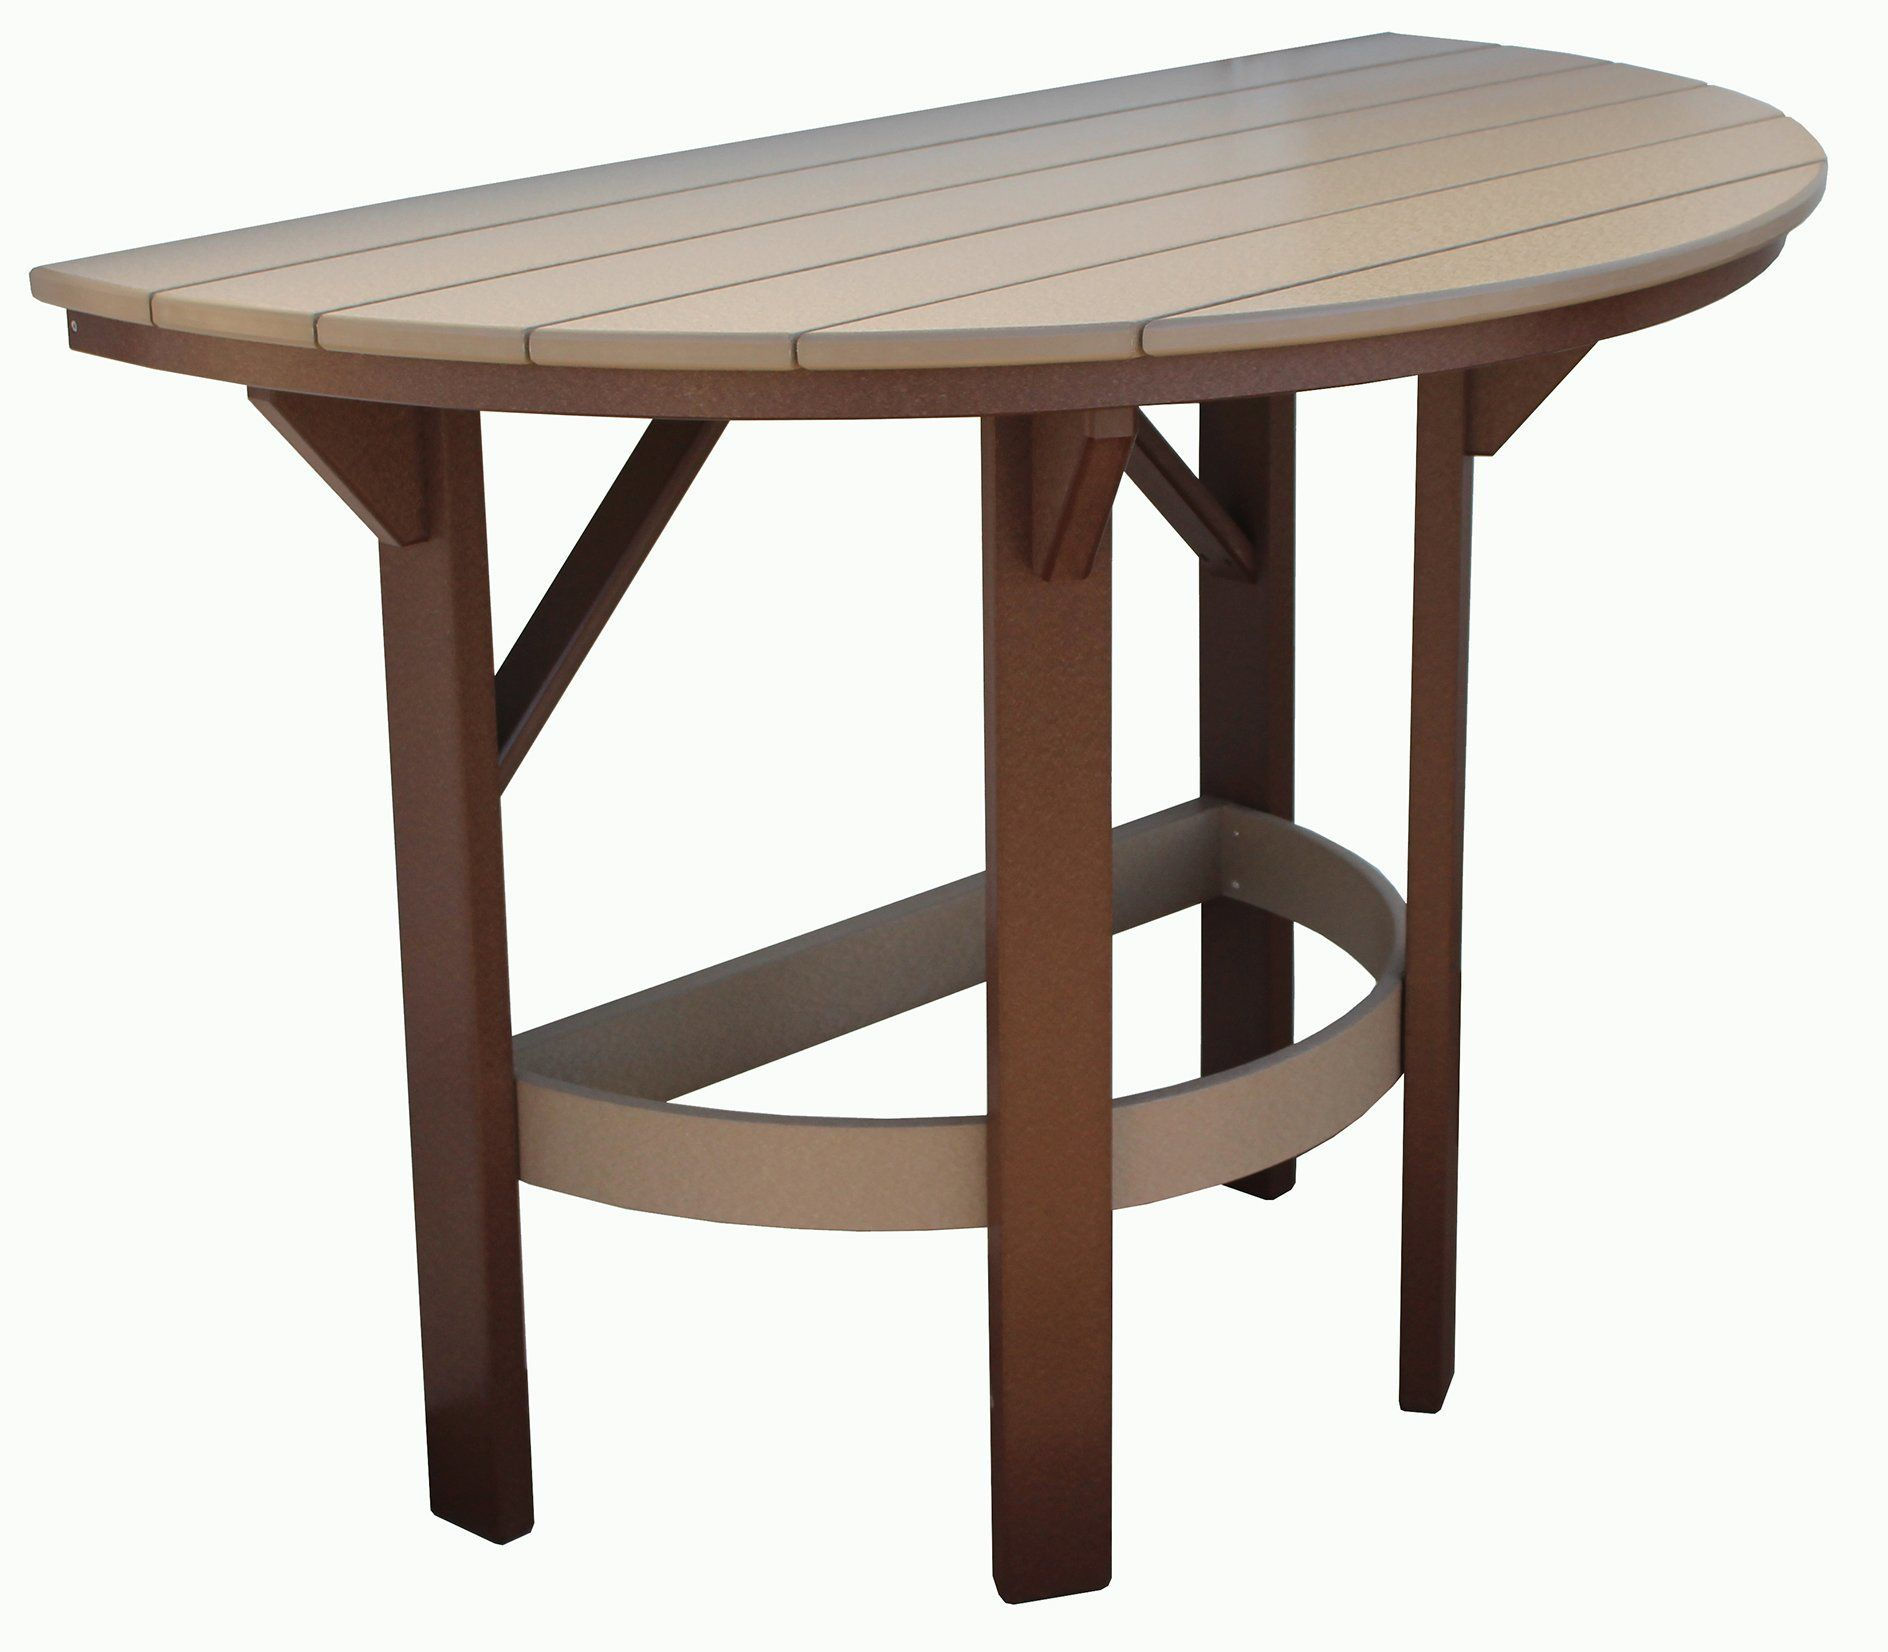 Amish Seaside 60 Half Round Poly Composite Dining Table Dining Table Poly Furniture Outdoor Furniture Collections 60 inch round outdoor dining table